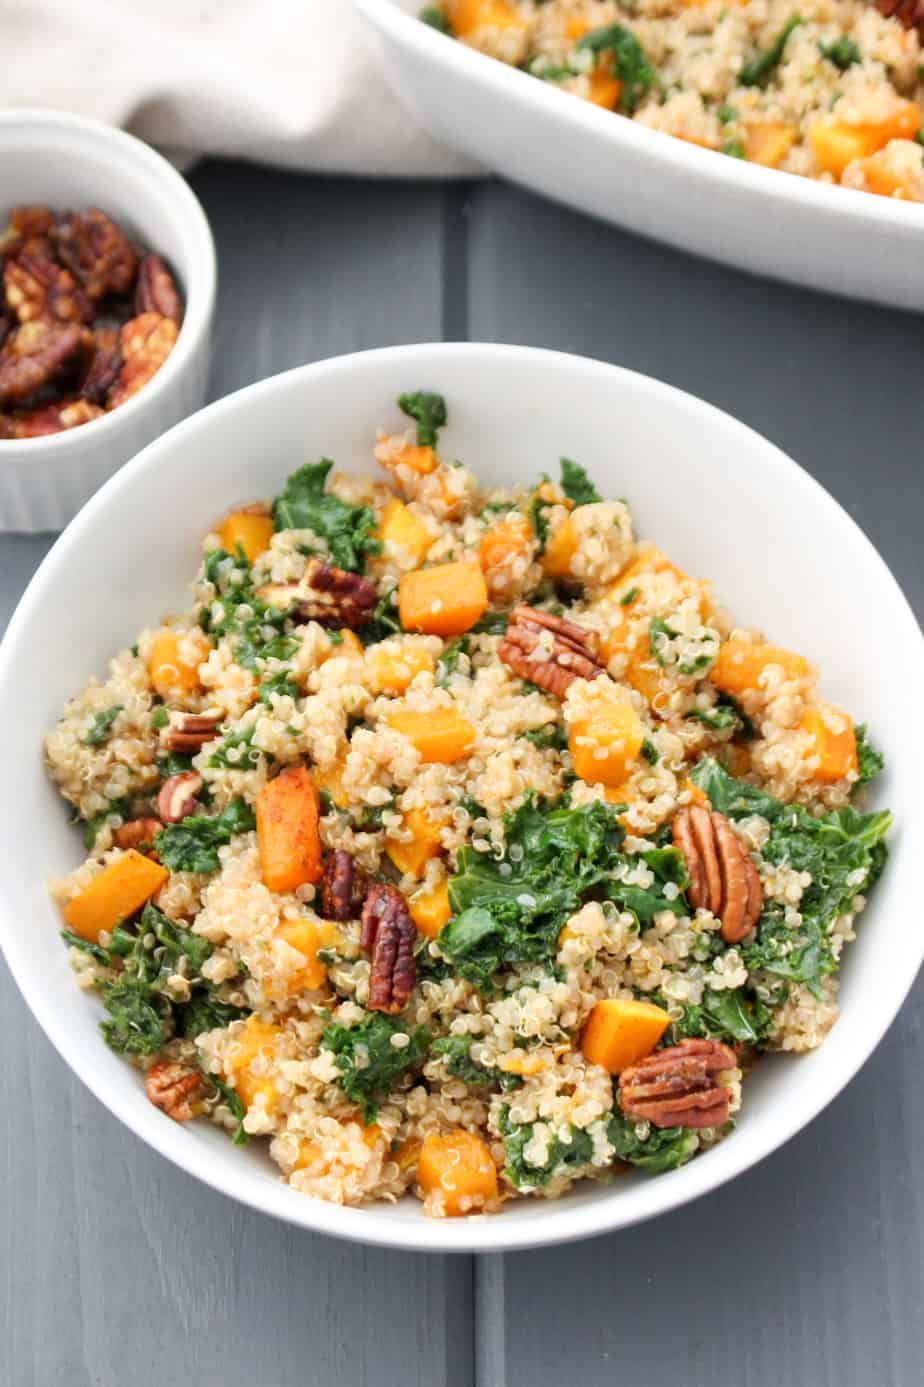 Butternut Squash Quinoa with Kale and Candied Pecans | Frugal Nutrition